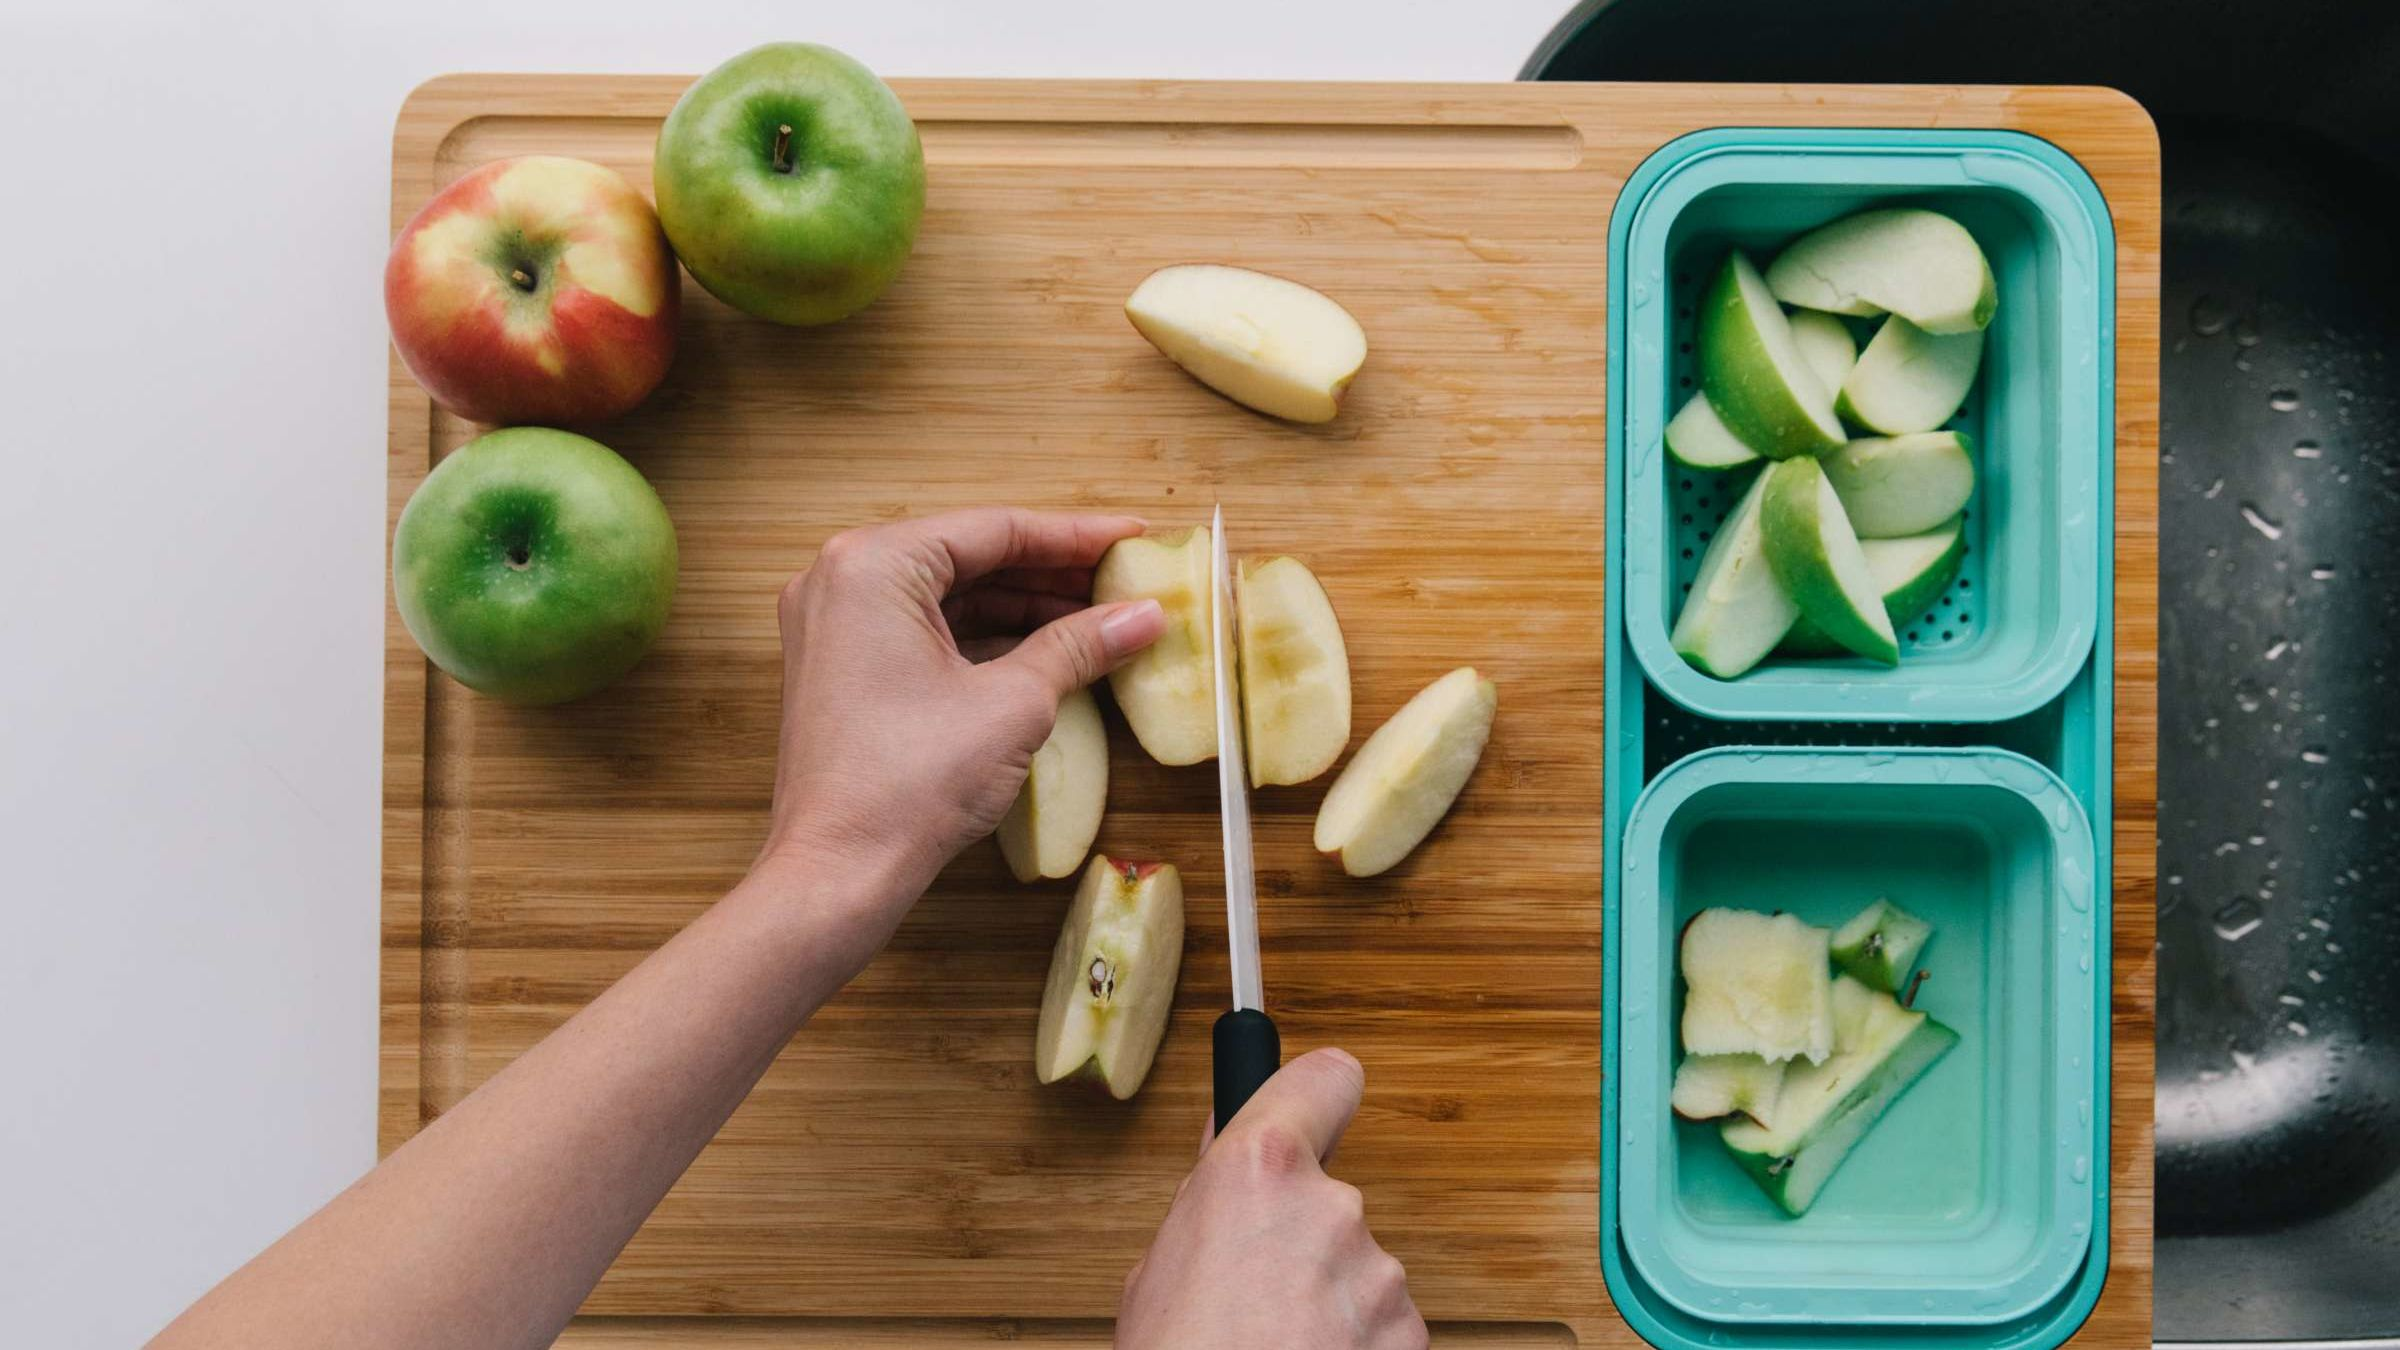 This Innovative Cutting Board Takes the Mess Out of Meal Prep